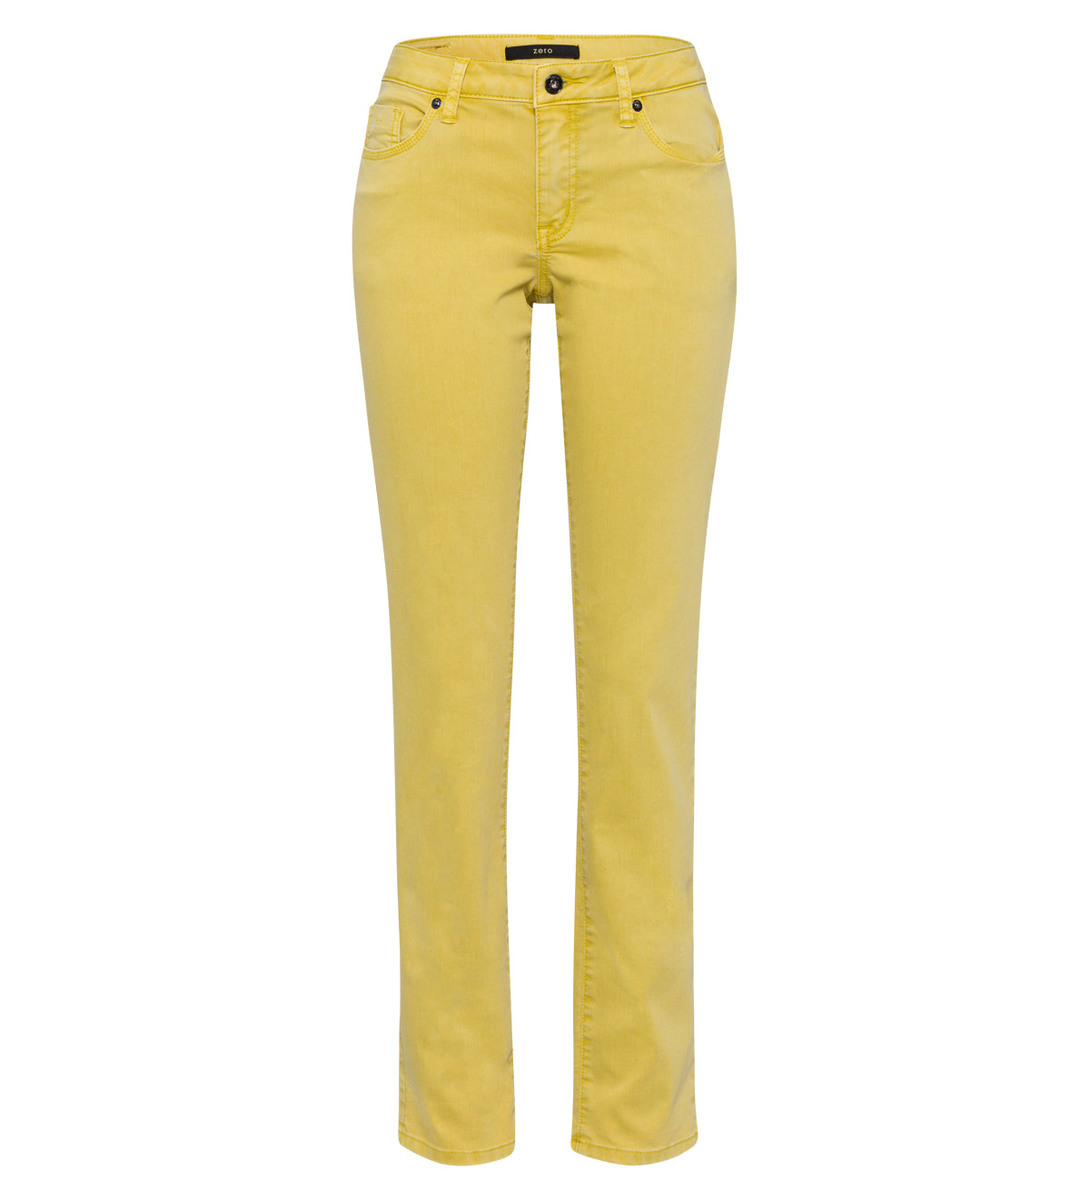 Jeans slim fit 32 Inch in winter lime